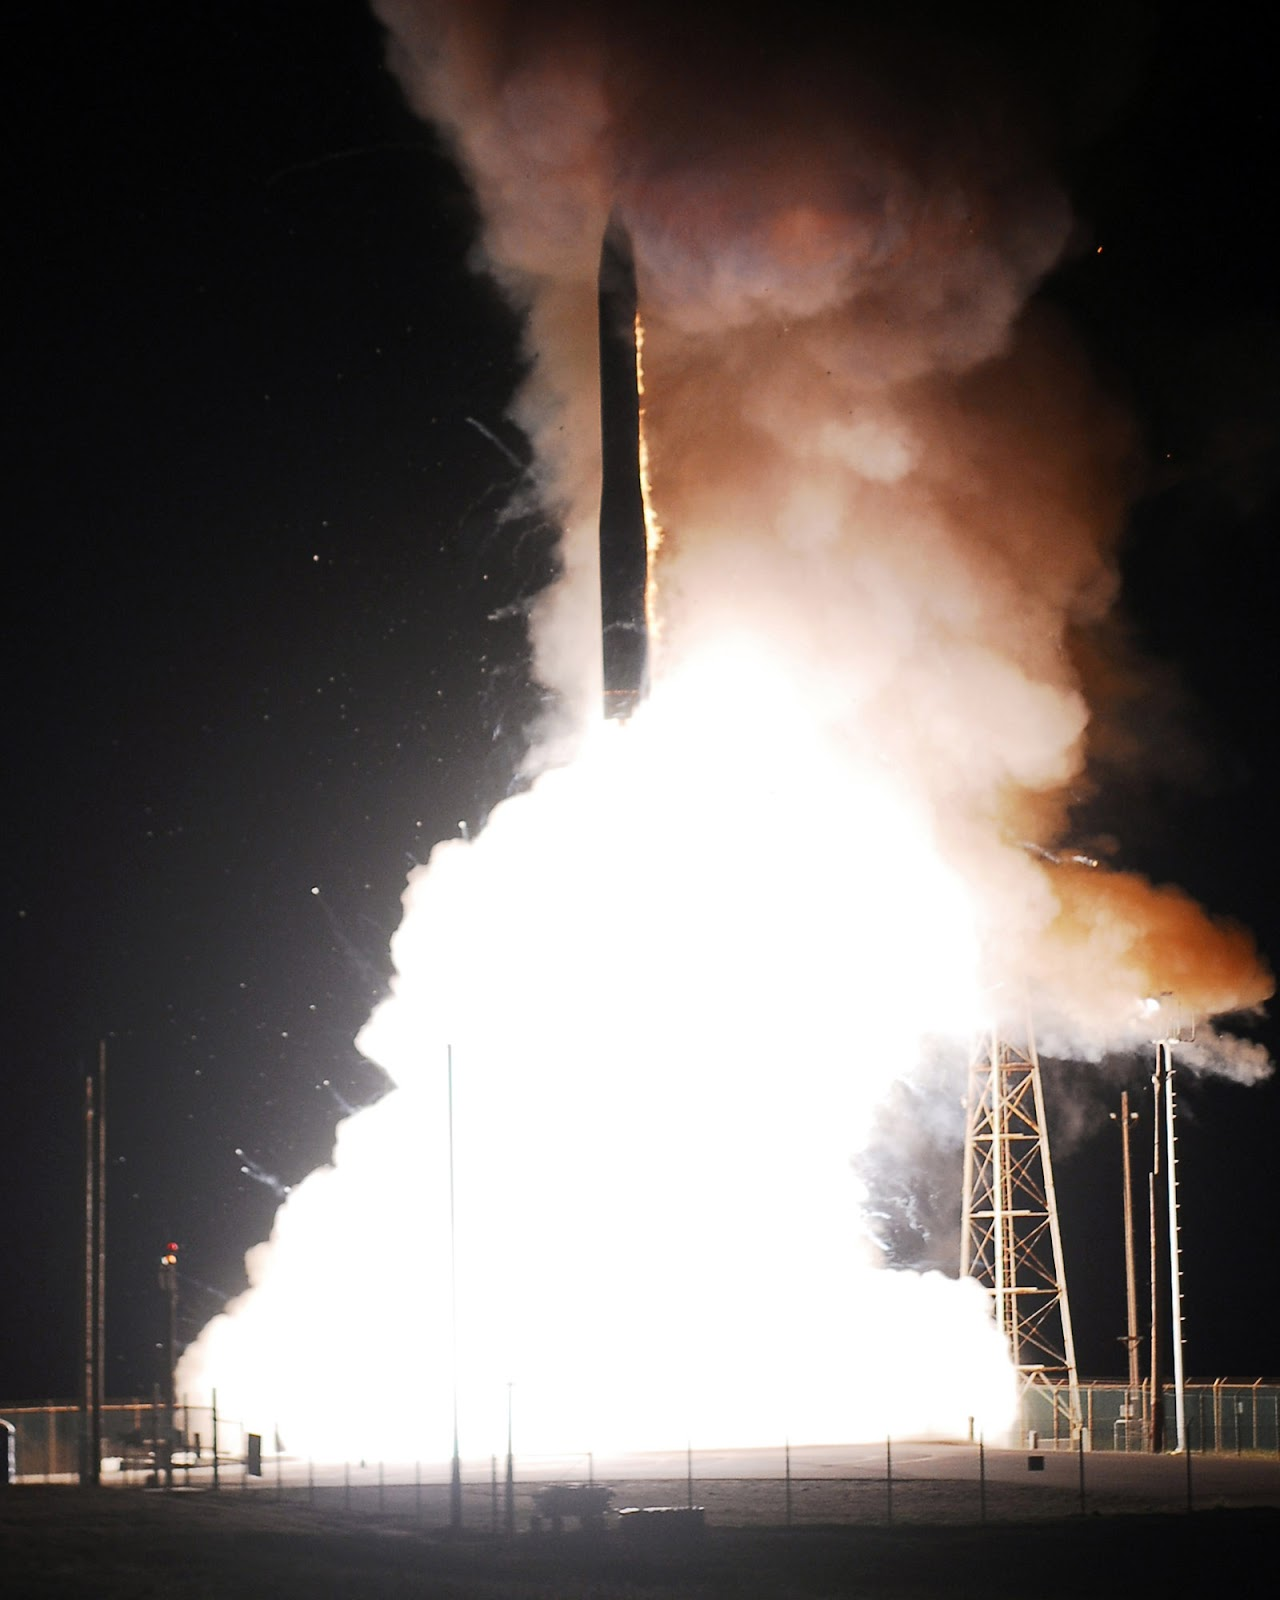 Naval Open Source INTelligence: U S  nuclear missile silos